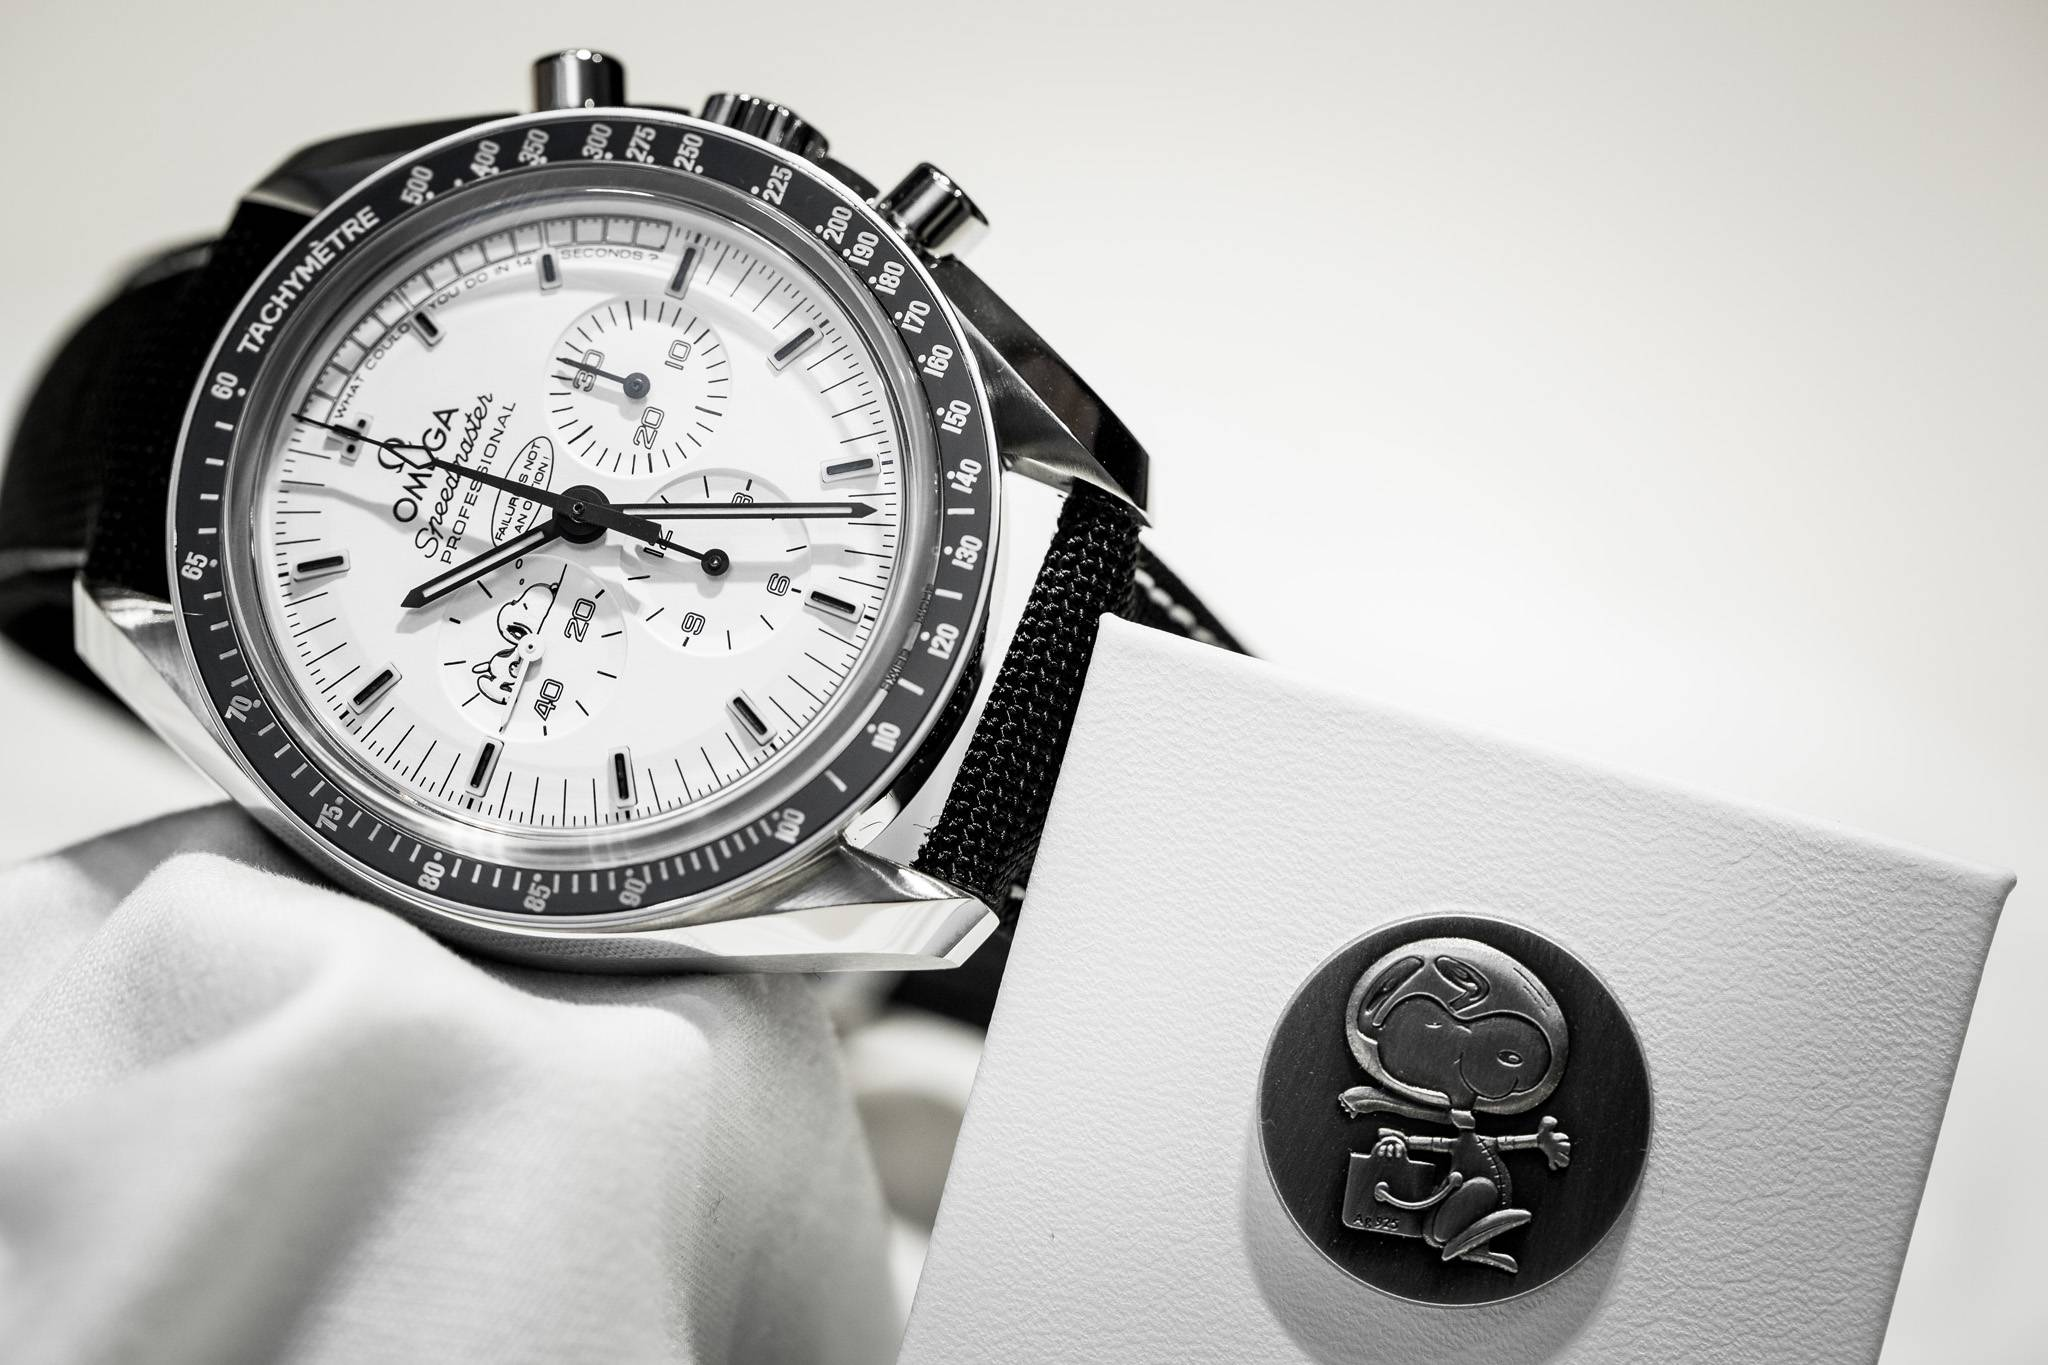 Omega Speedmaster Apollo 13 Silver Snoopy Award Limited Edition Watch Front